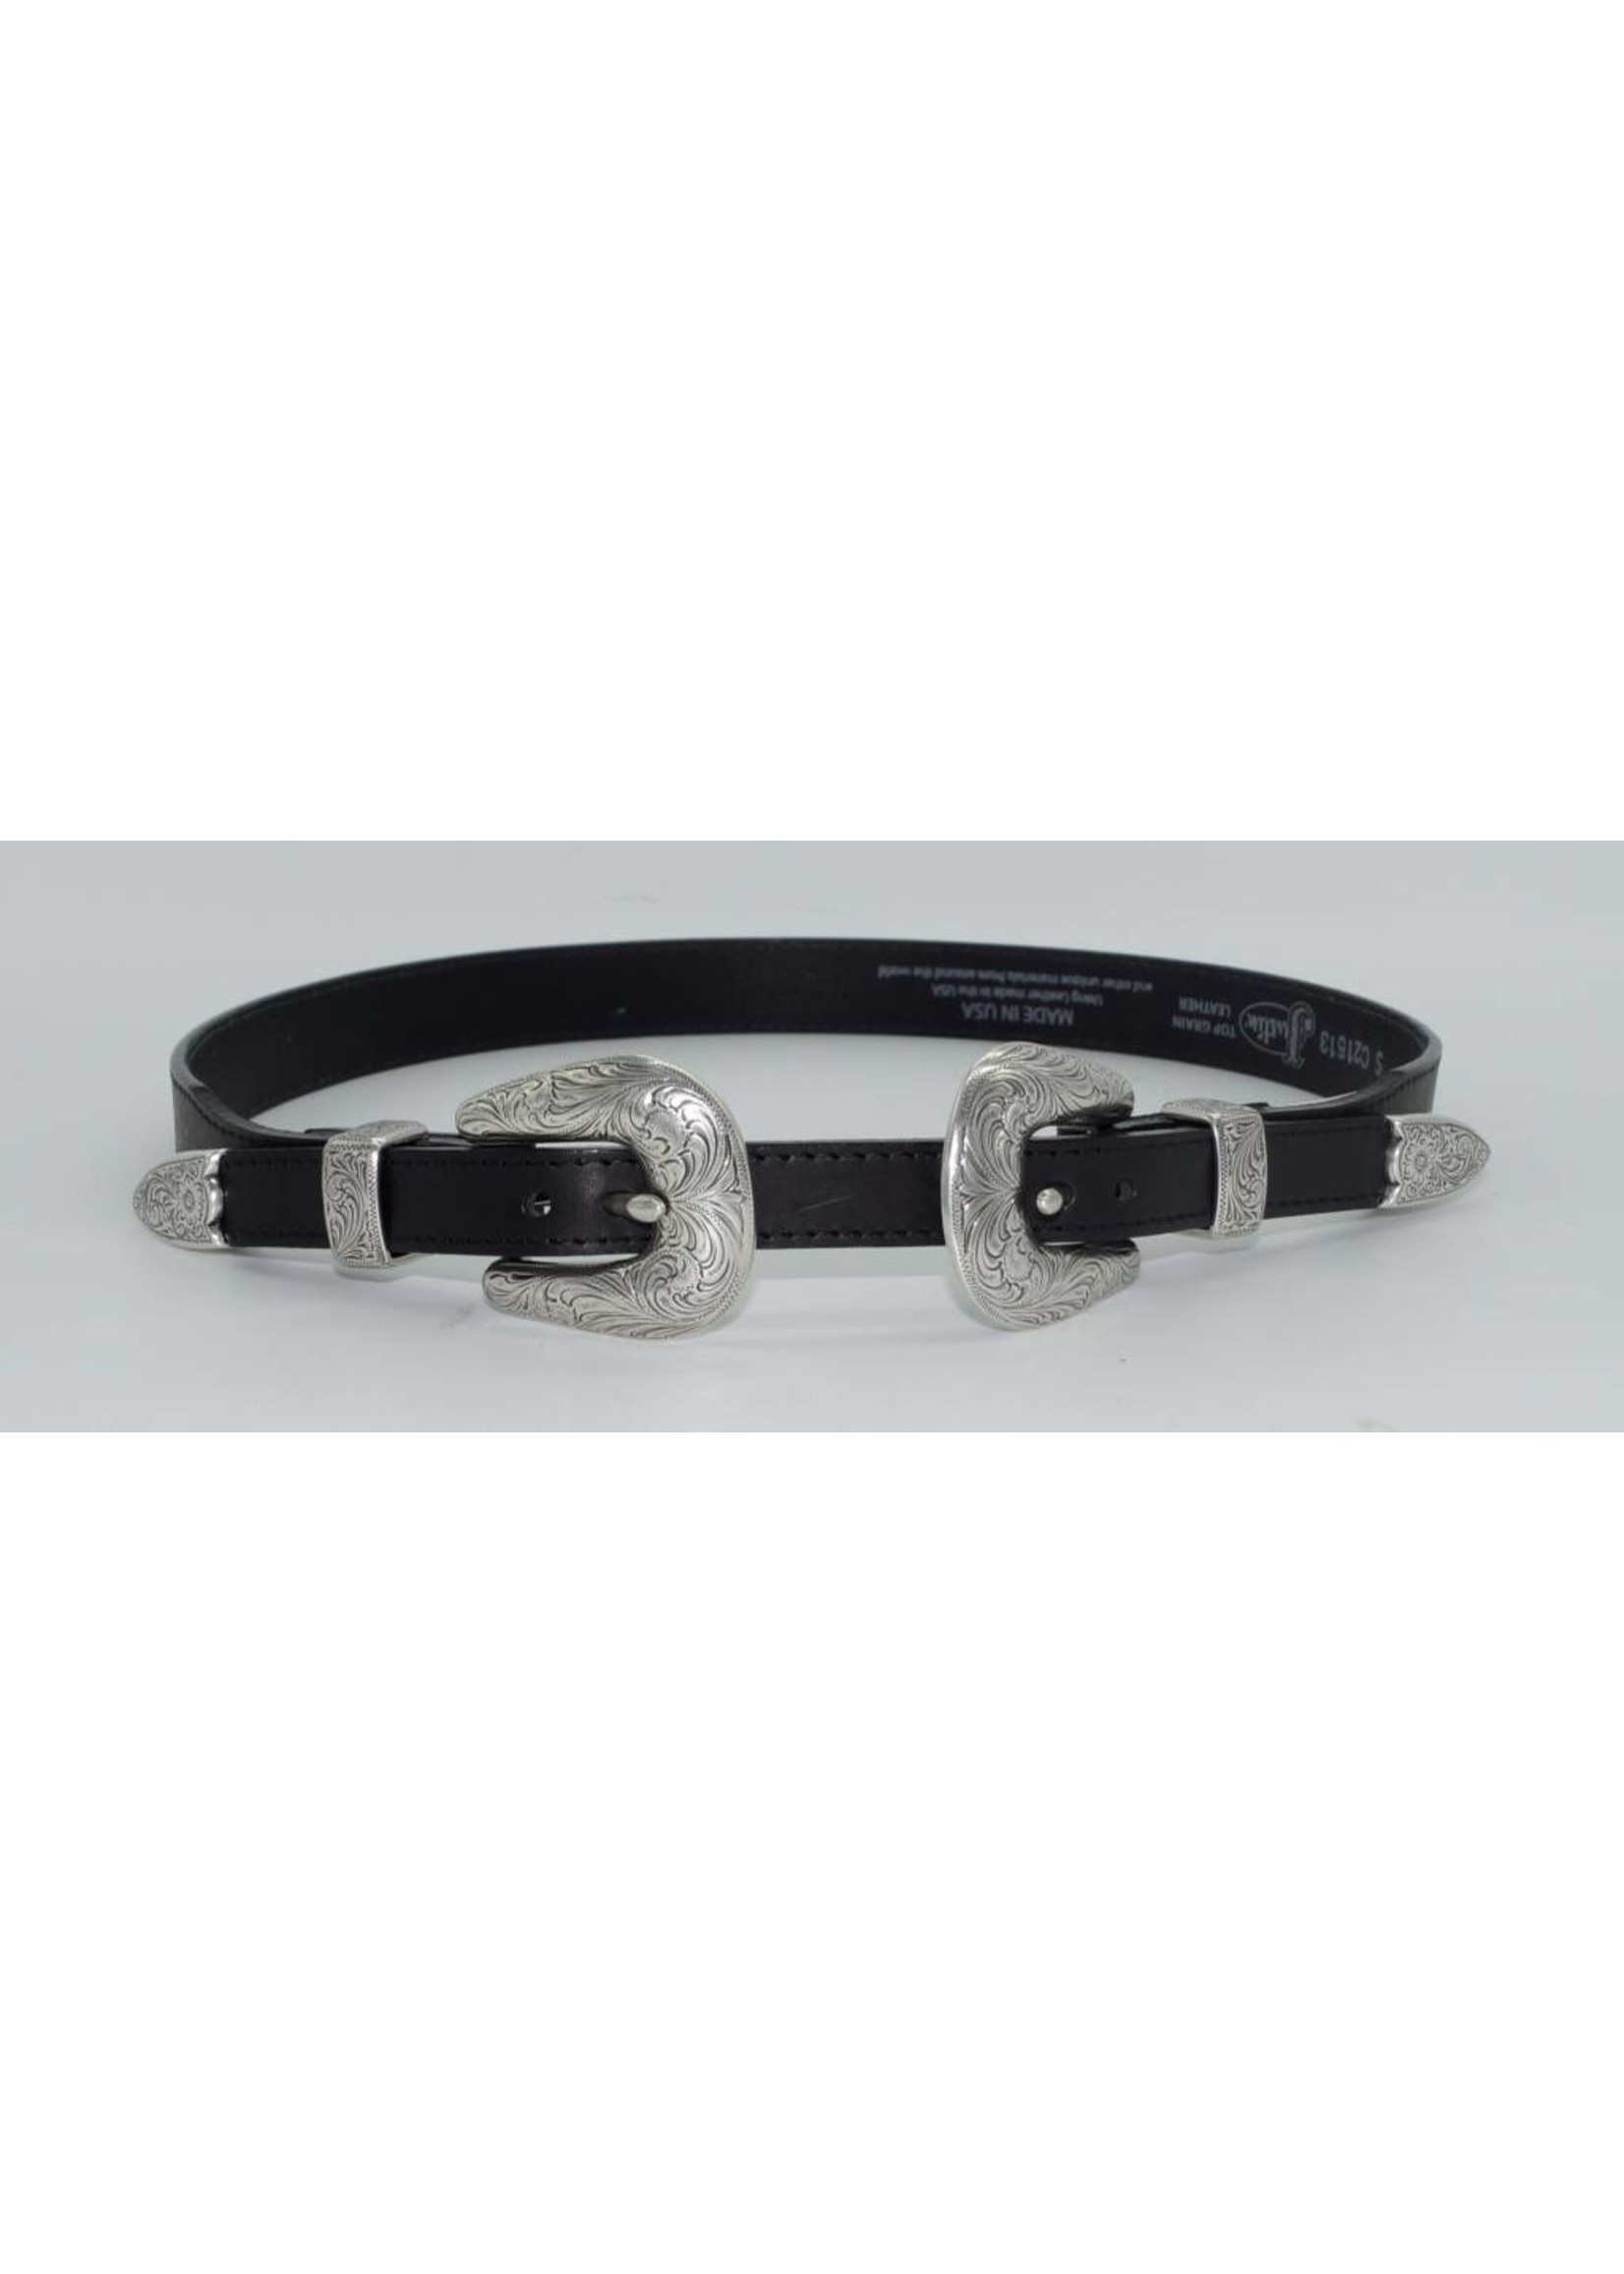 Justin Justin Women's Annie Oakley Double Buckle Black Fashion Belt C21513